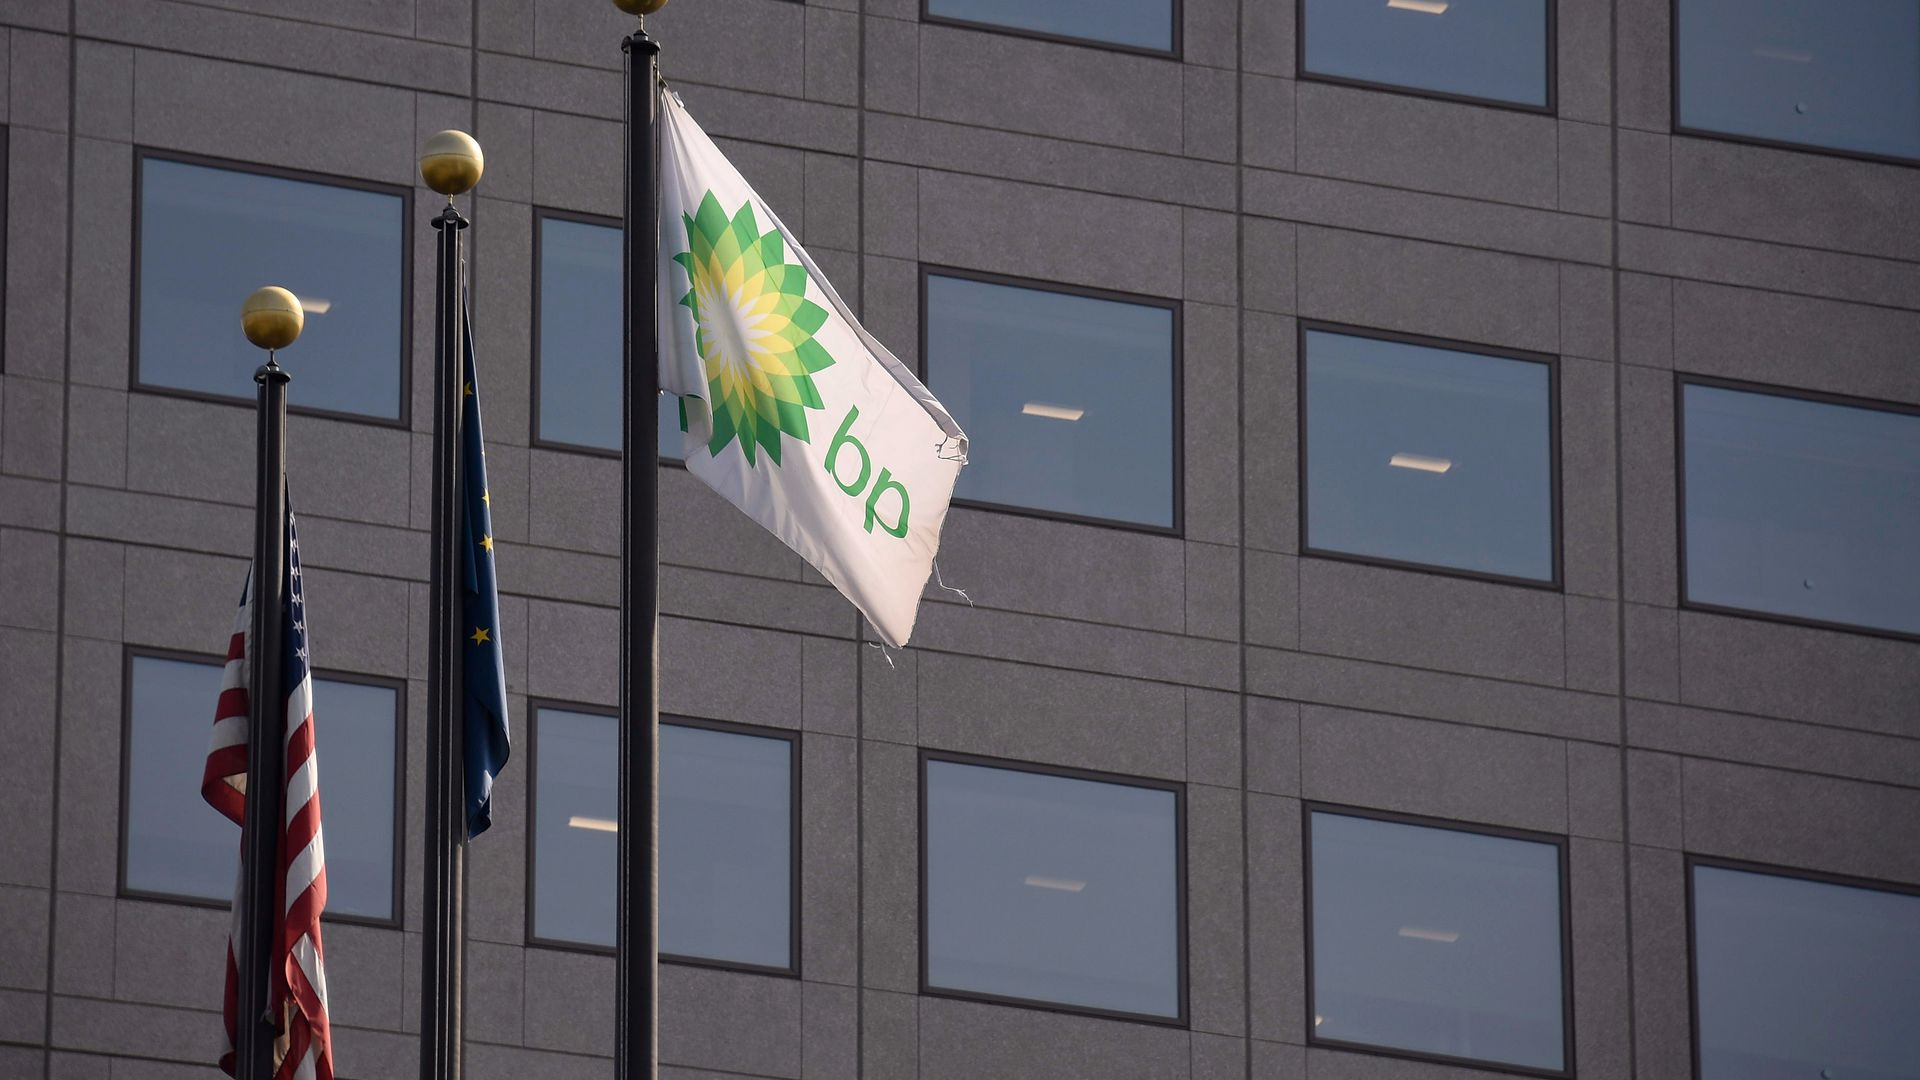 The American flag next to another flag and the flag of BP on a staff next to a building.